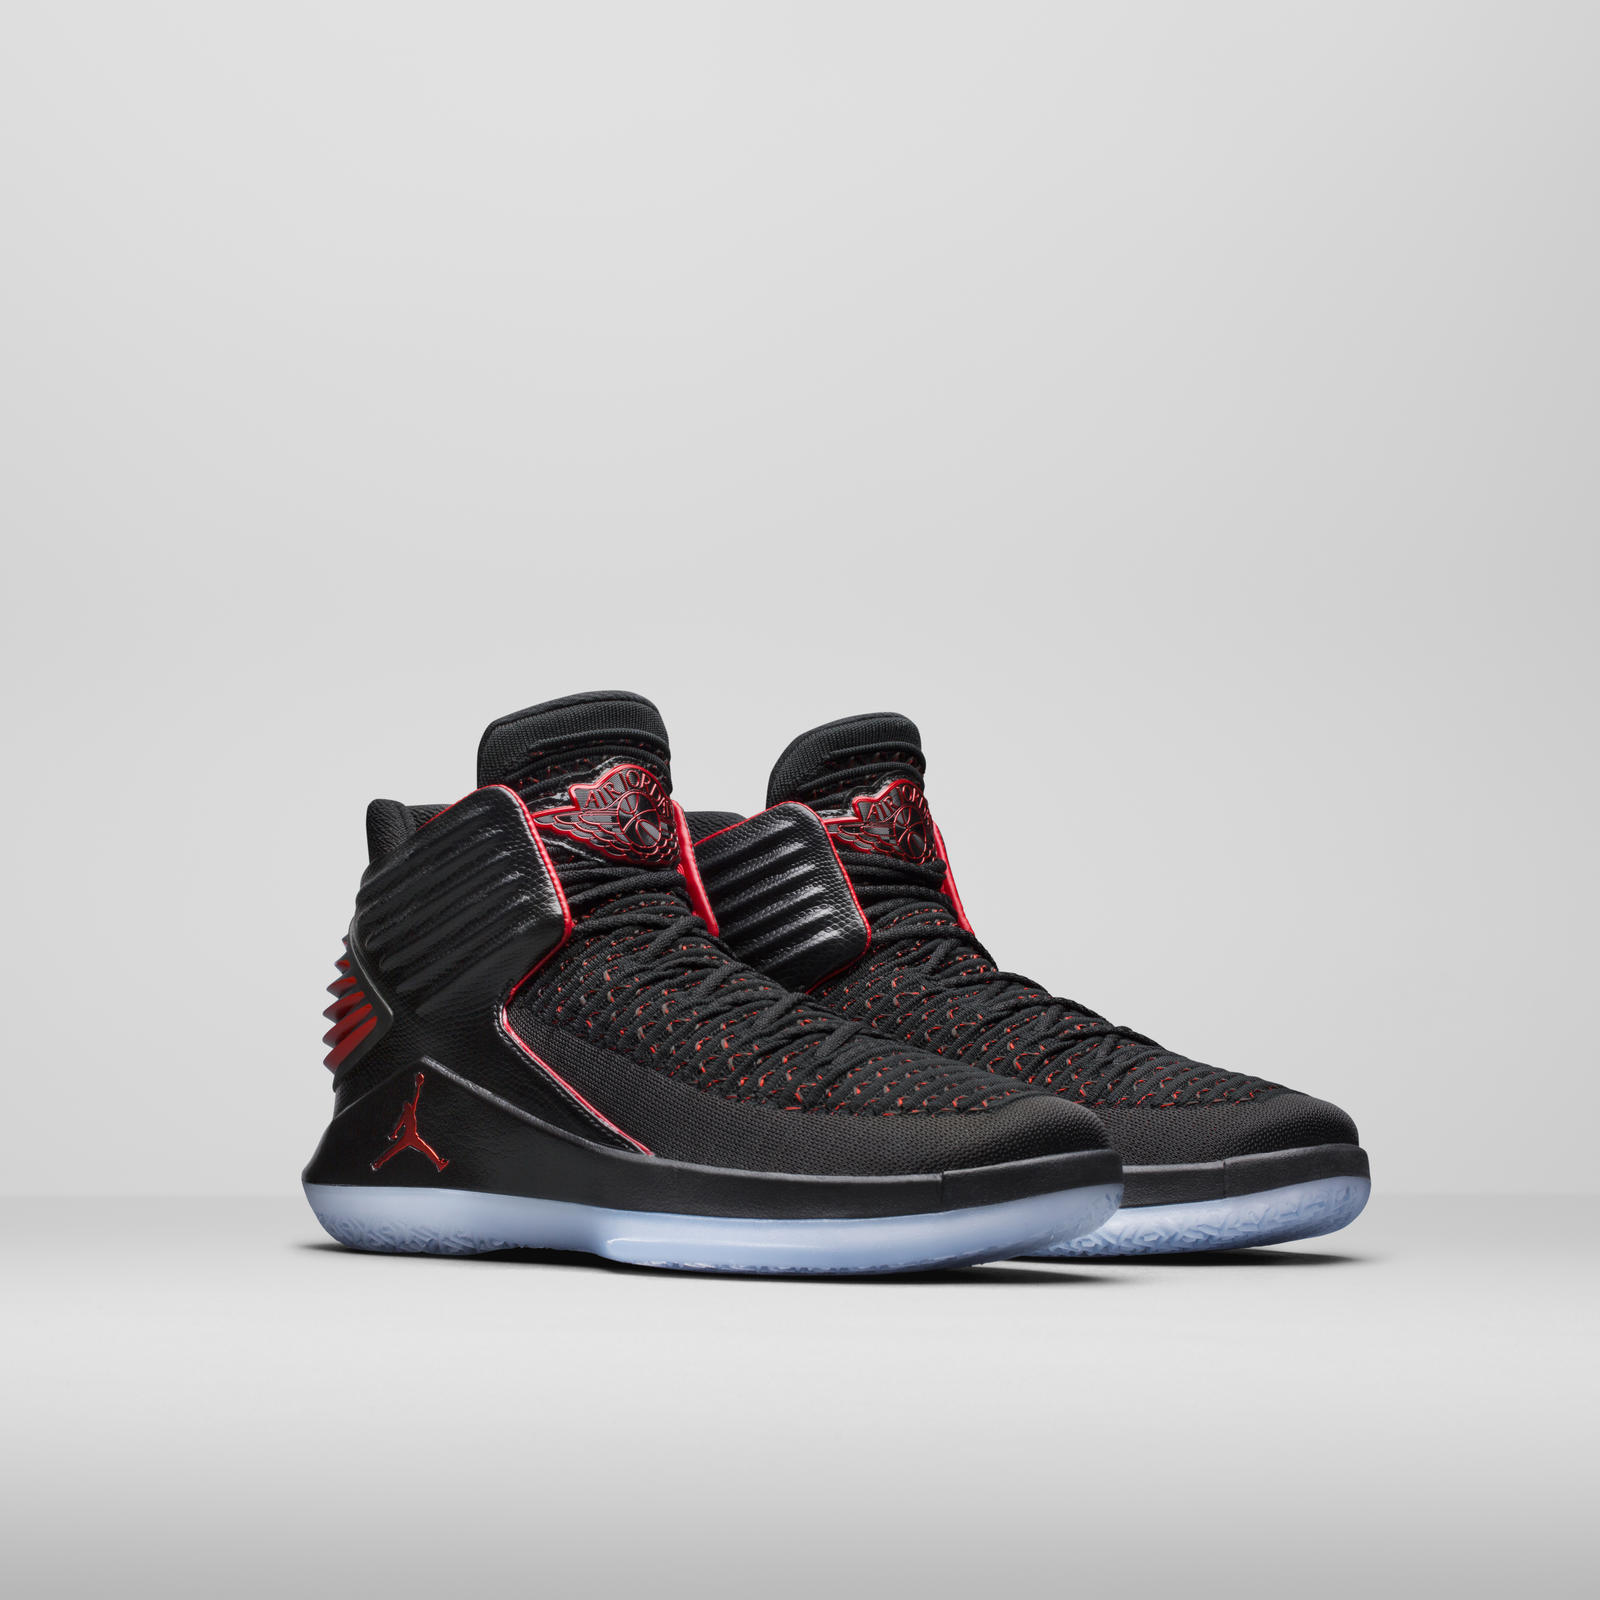 9230a2099 Introducing the Air Jordan XXXII - Nike News